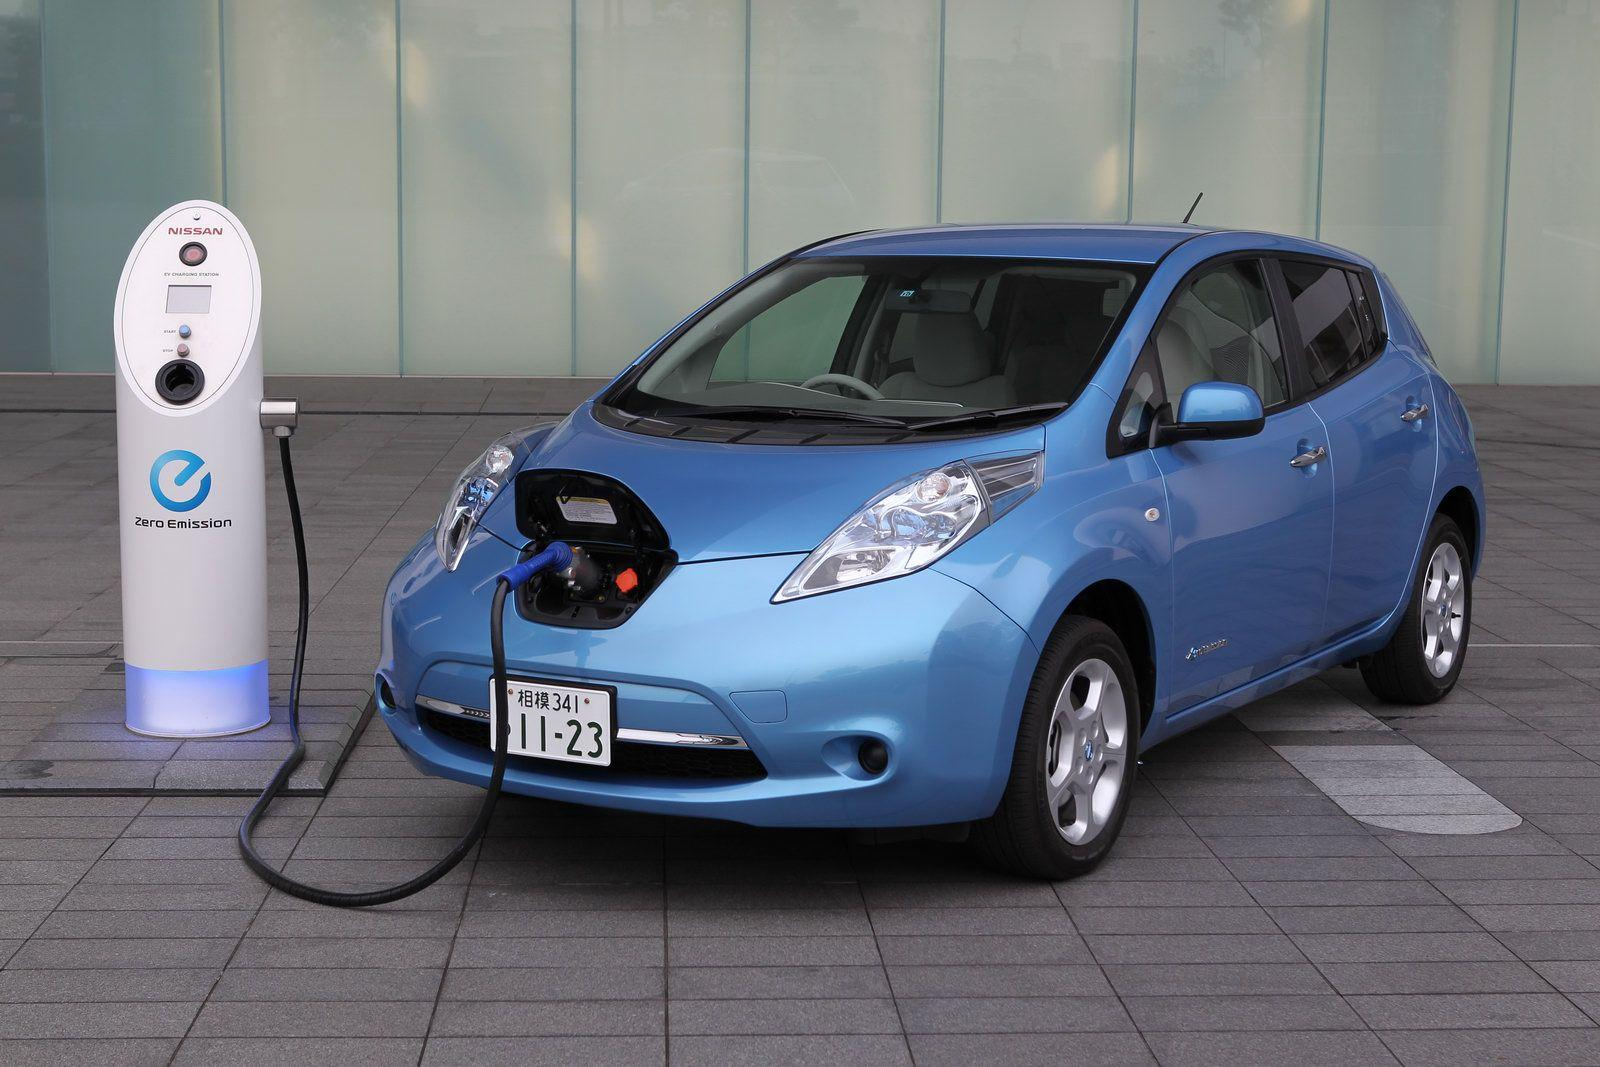 Nissan Leaf Photos and Wallpapers | TrueAutoSite